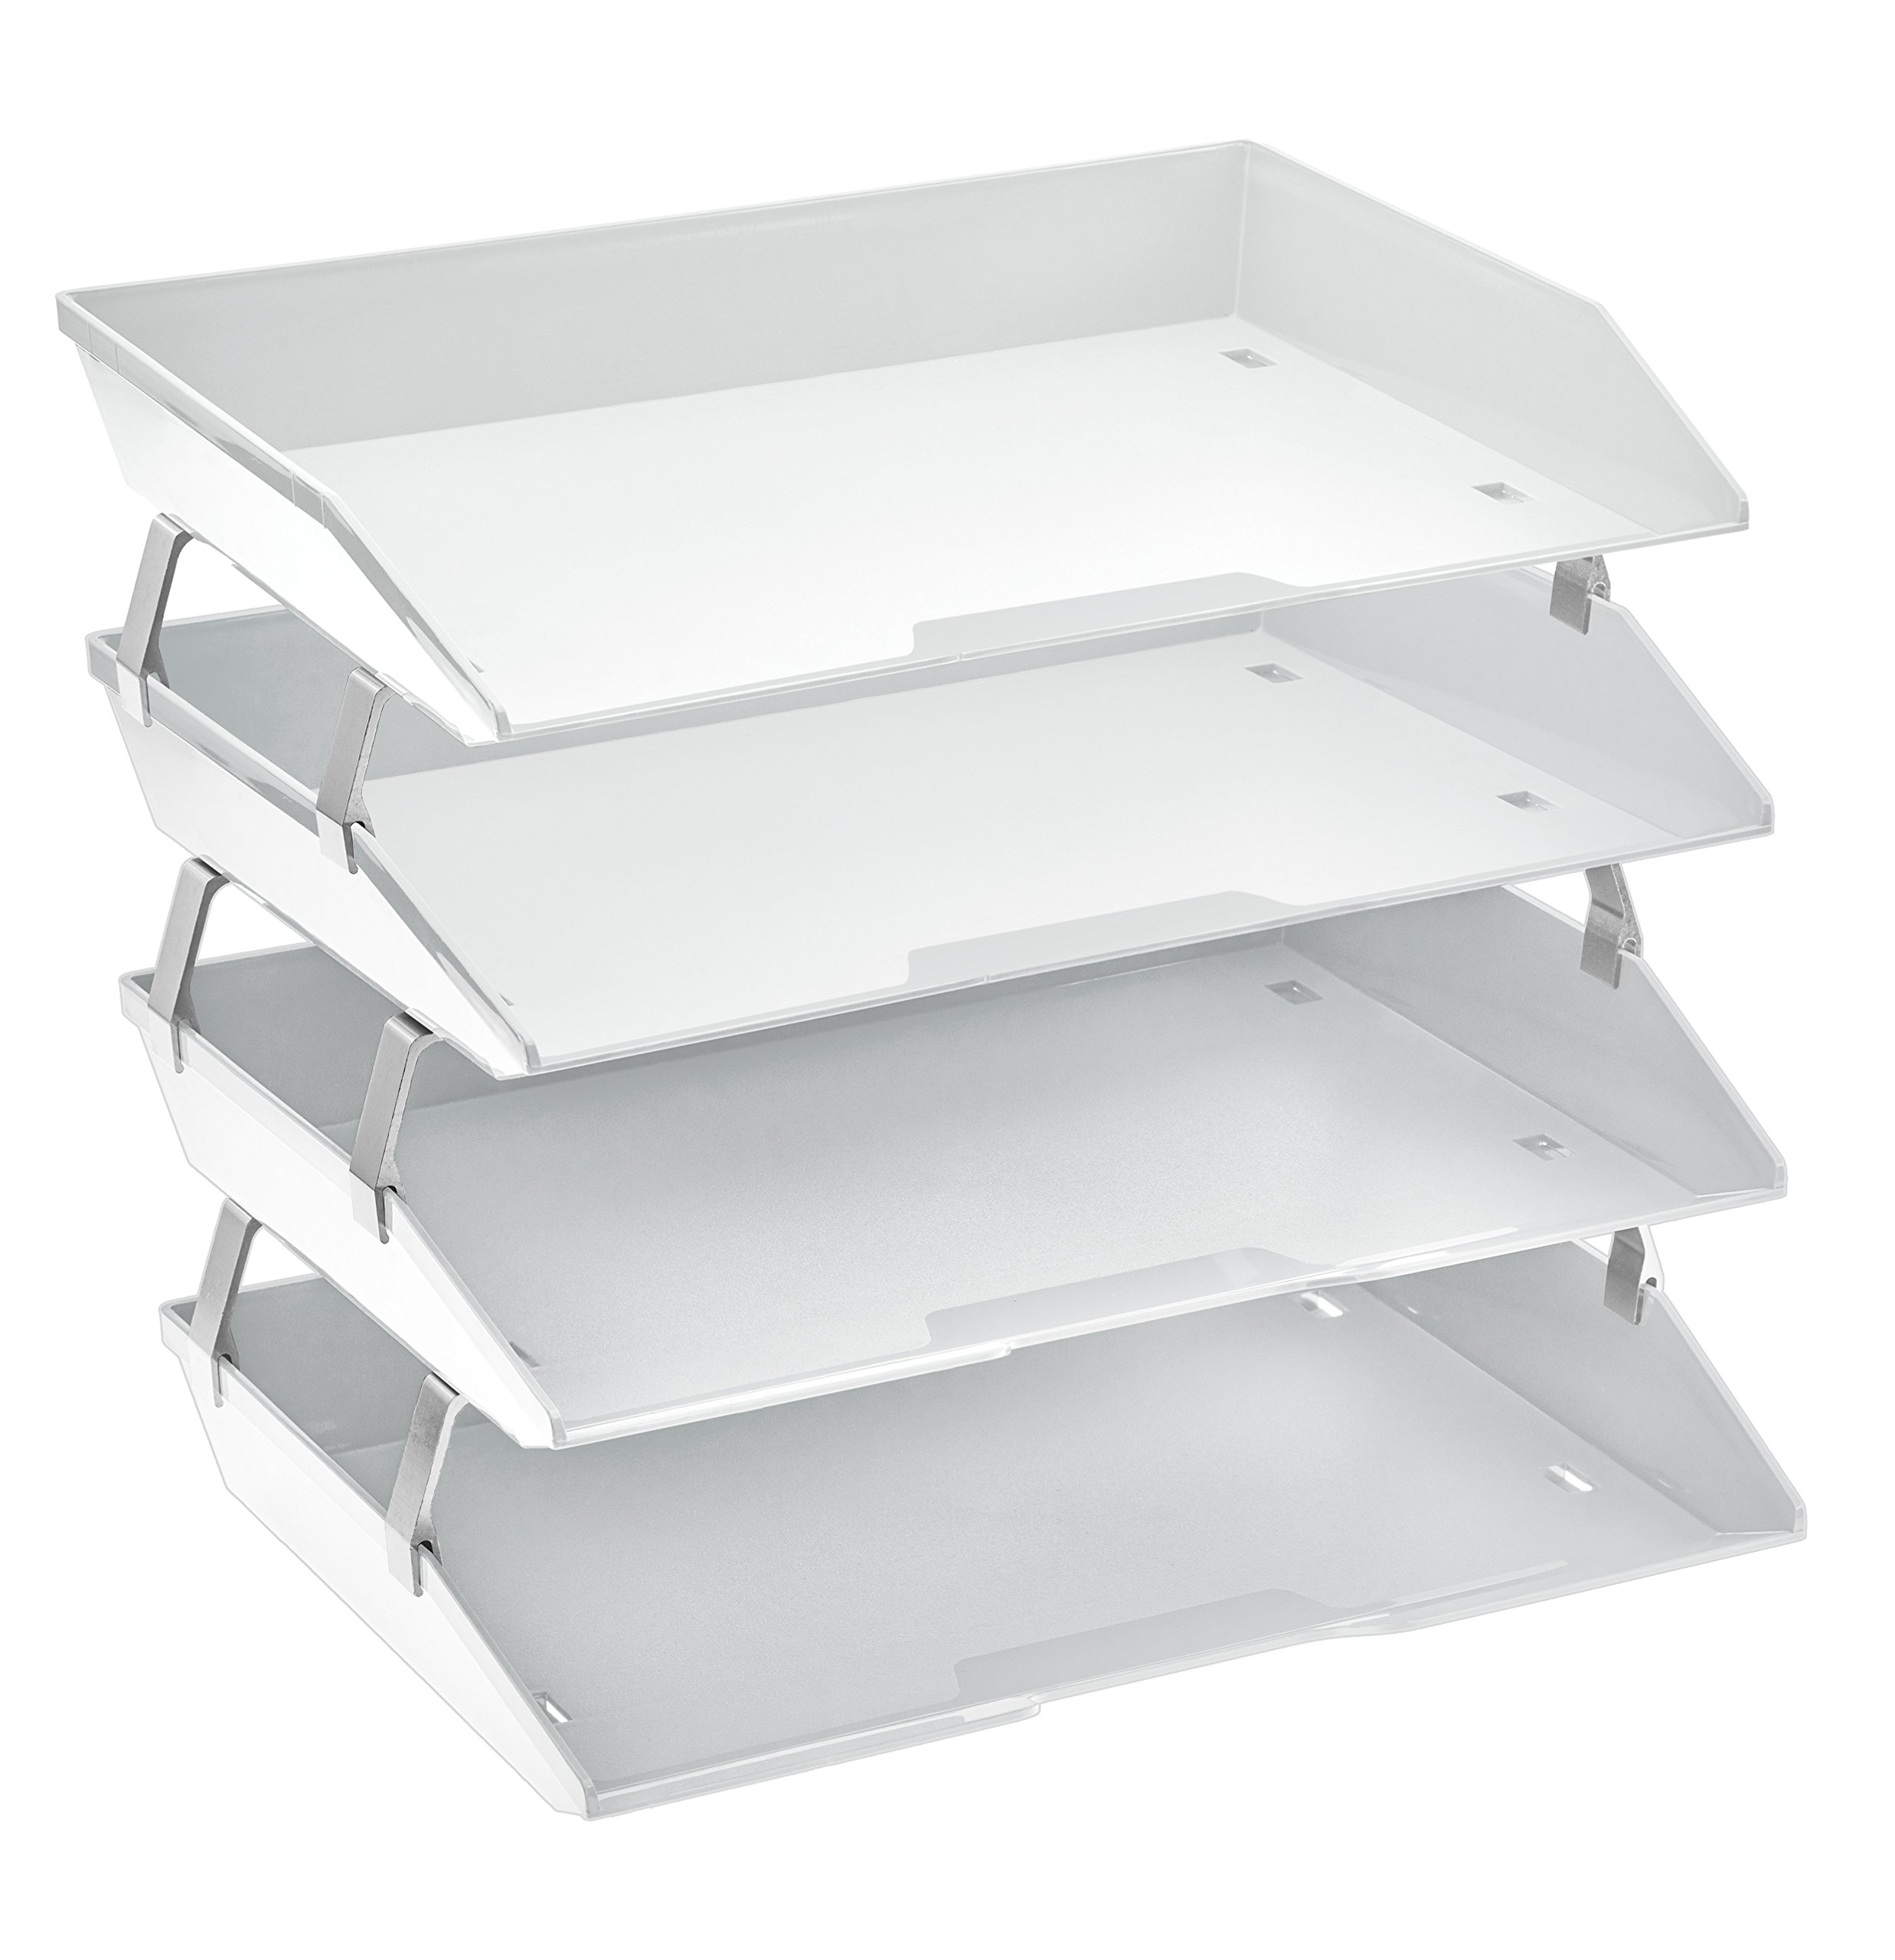 Acrimet Facility 4 Tier Letter Tray Side Load Plastic Desktop File Organizer (White Color) by Acrimet